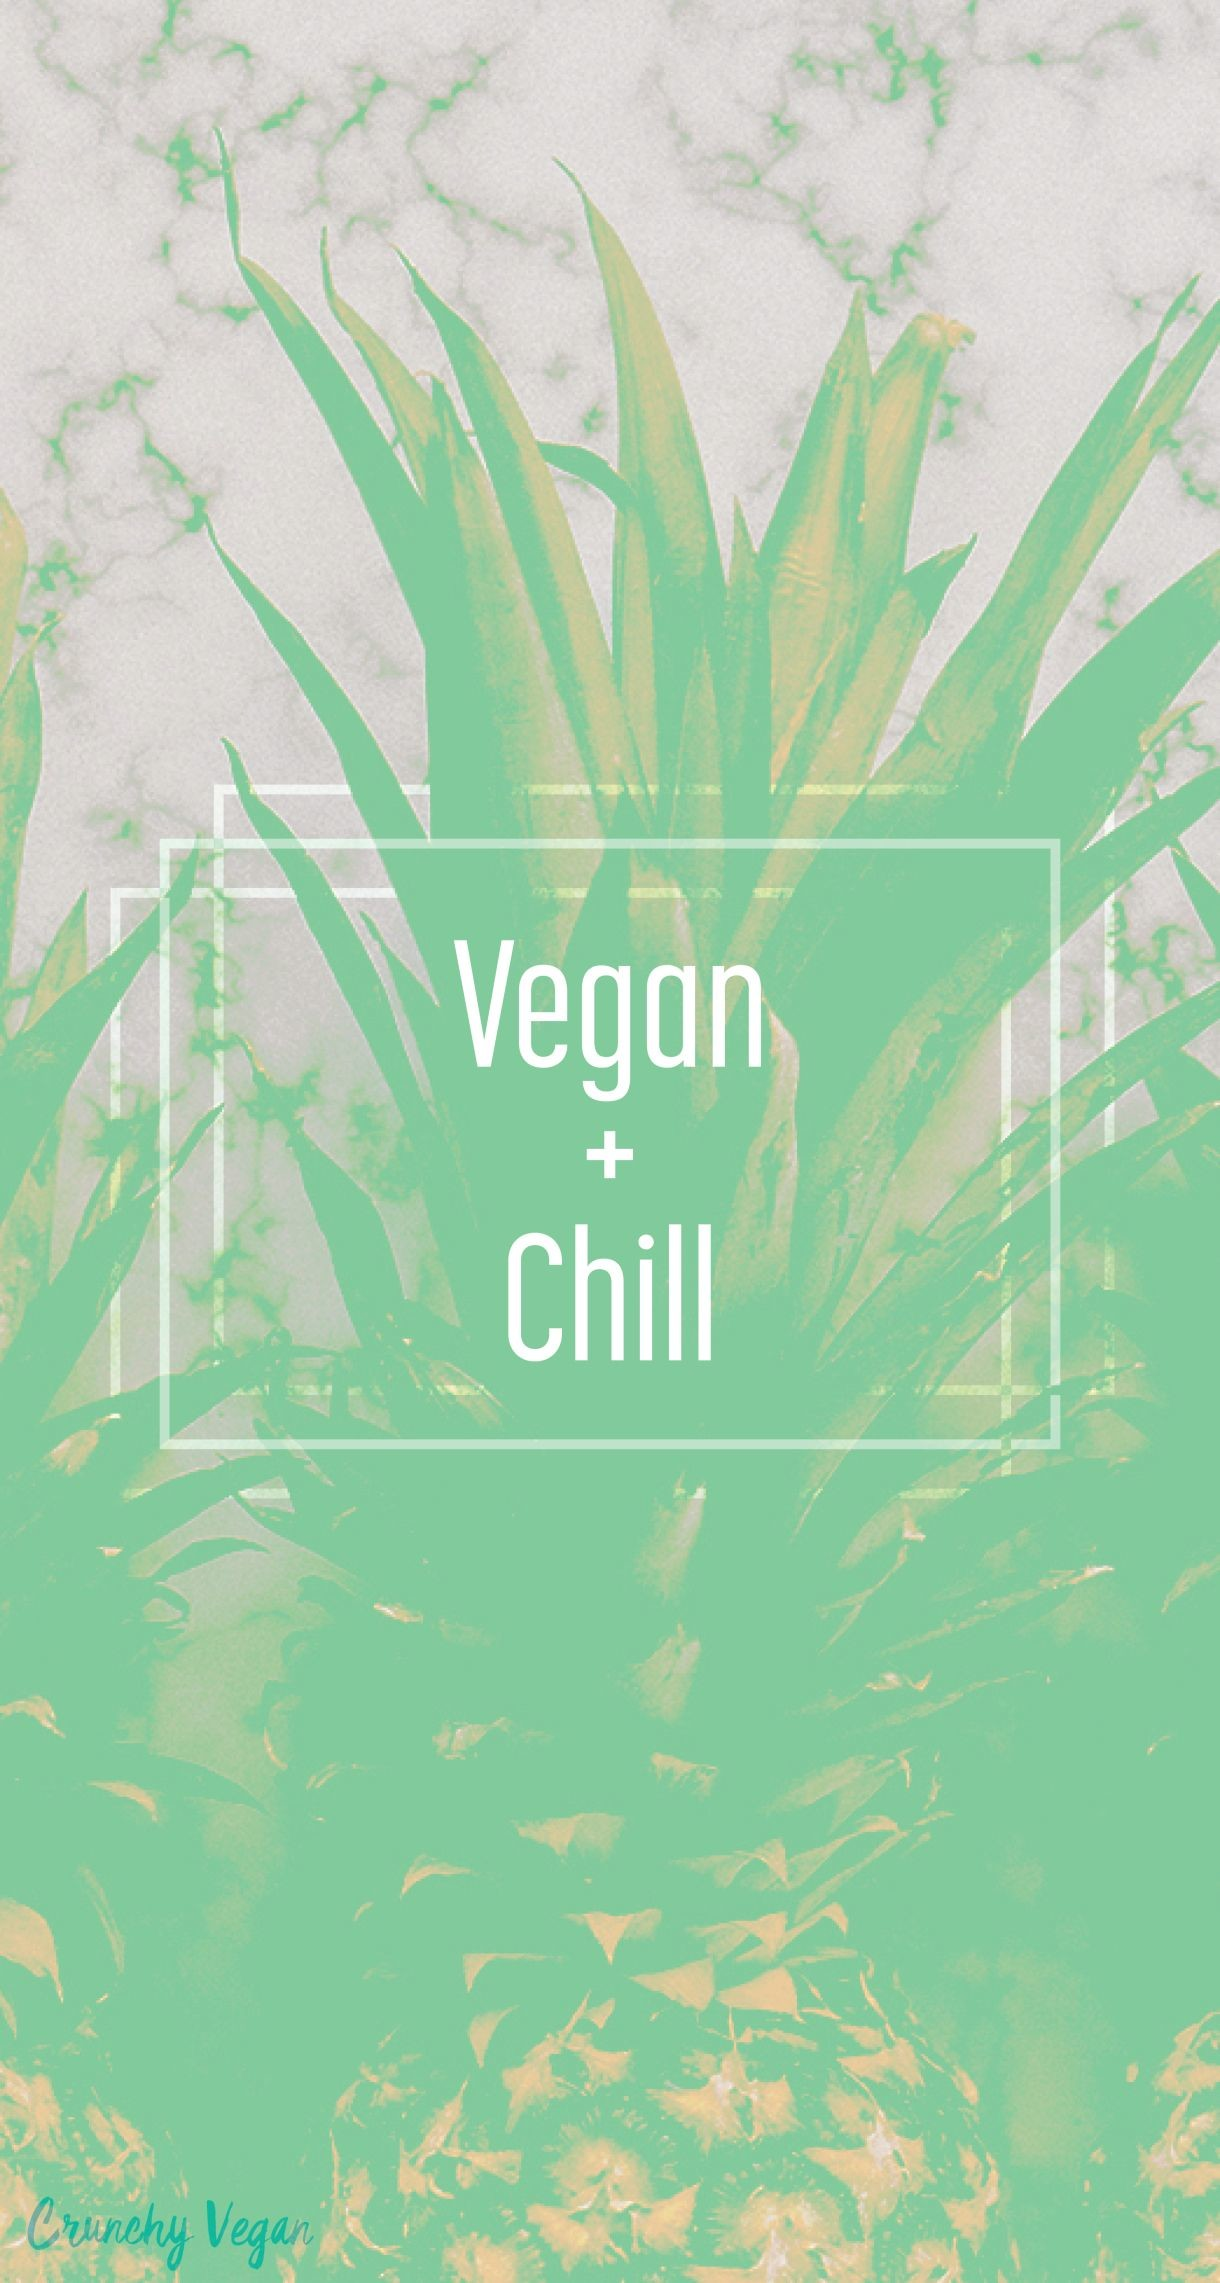 Res: 1220x2283, vegan and chill phone wallpaper from Crunchy Vegan